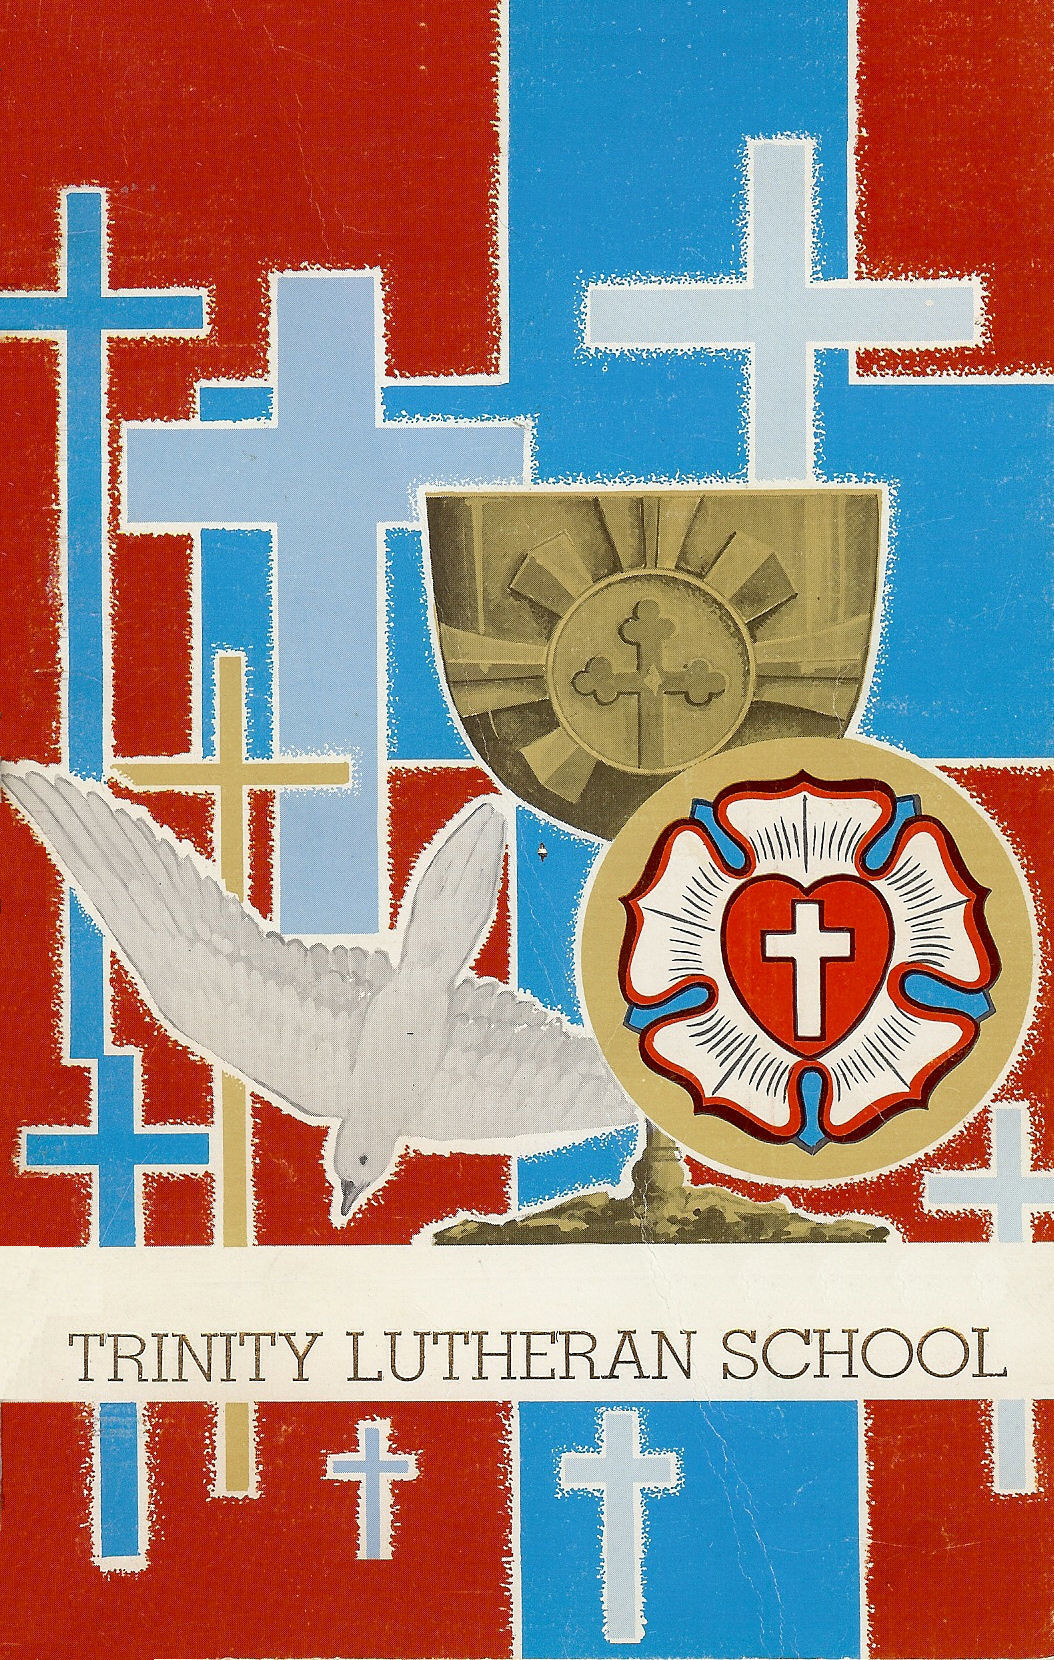 67-68 Yearbook Cover